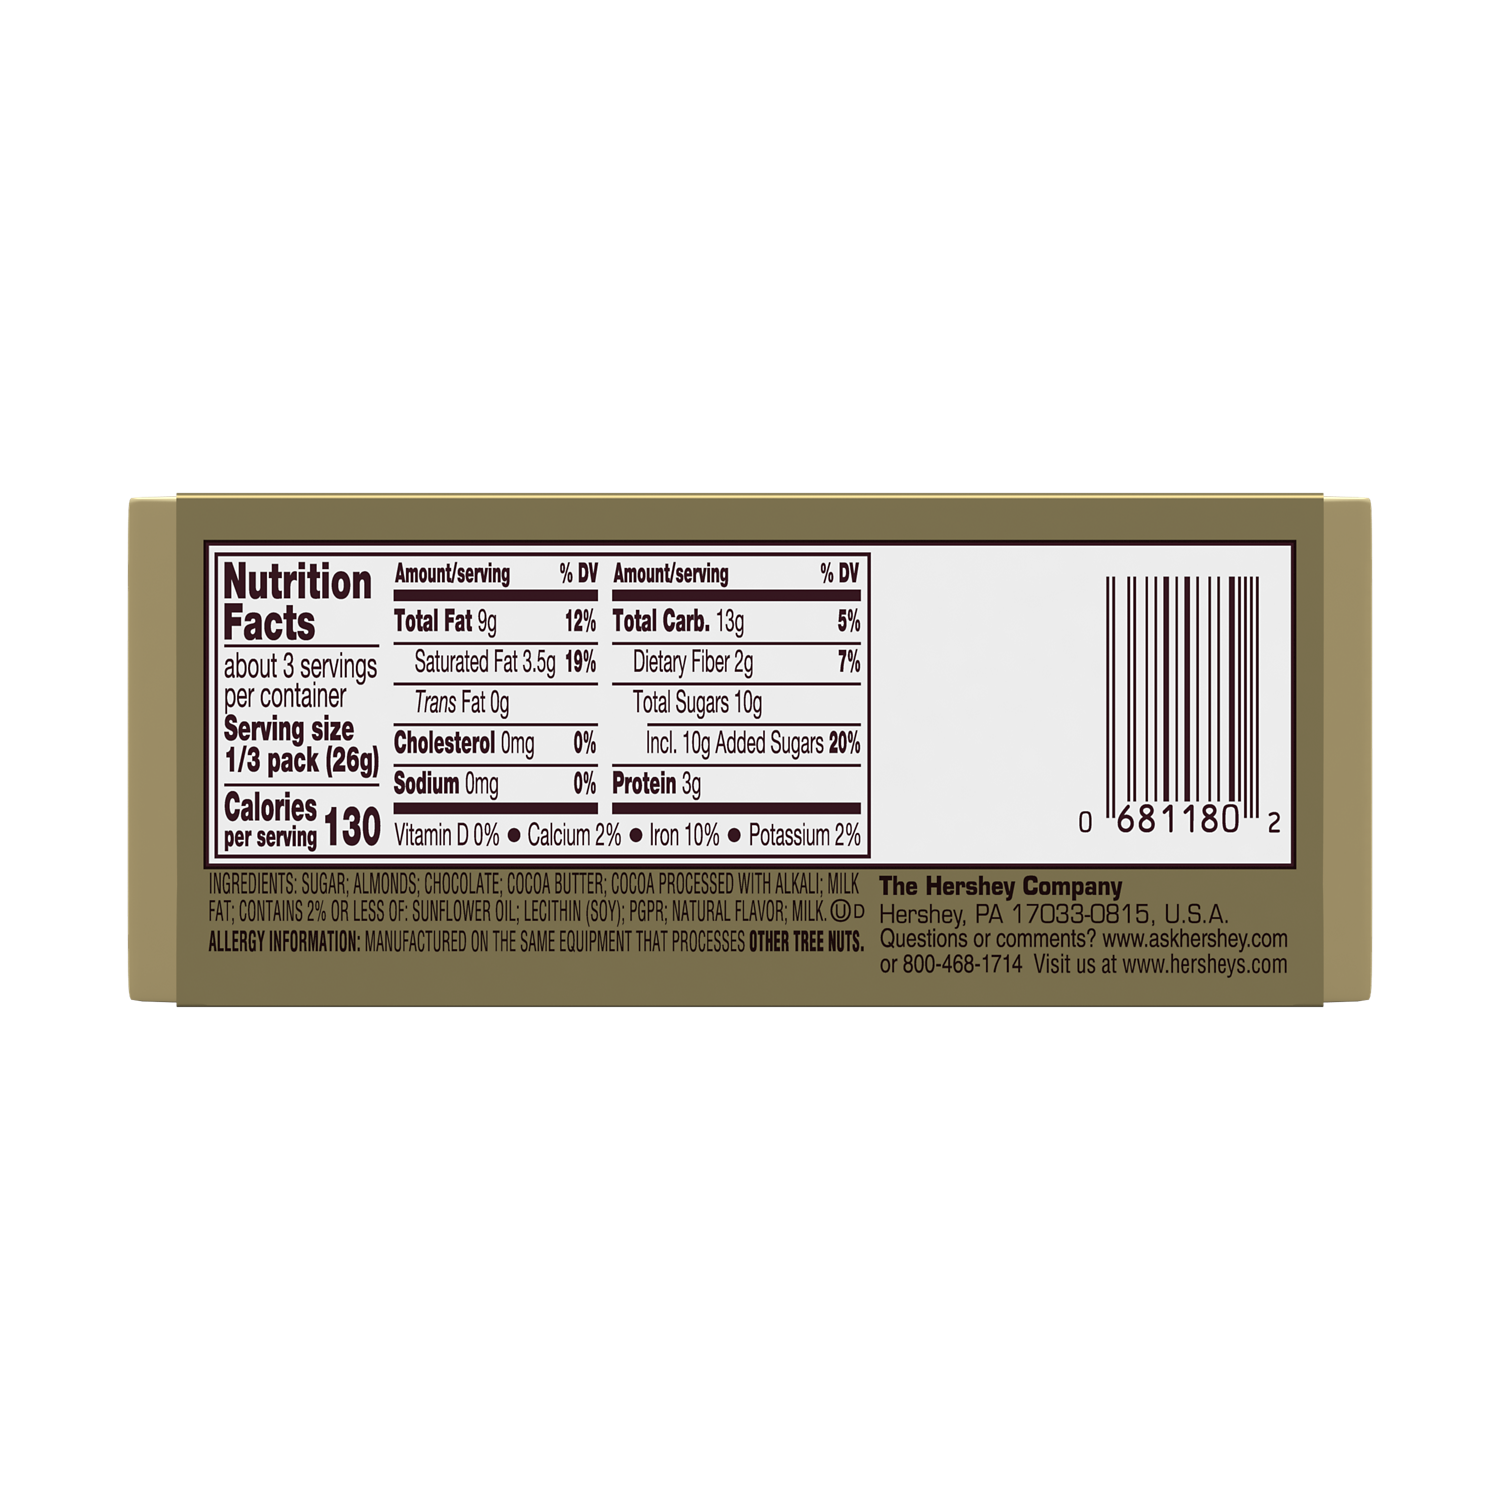 HERSHEY'S GOLDEN ALMOND Dark Chocolate Candy Bars, 2.8 oz, 5 pack - Back of Package